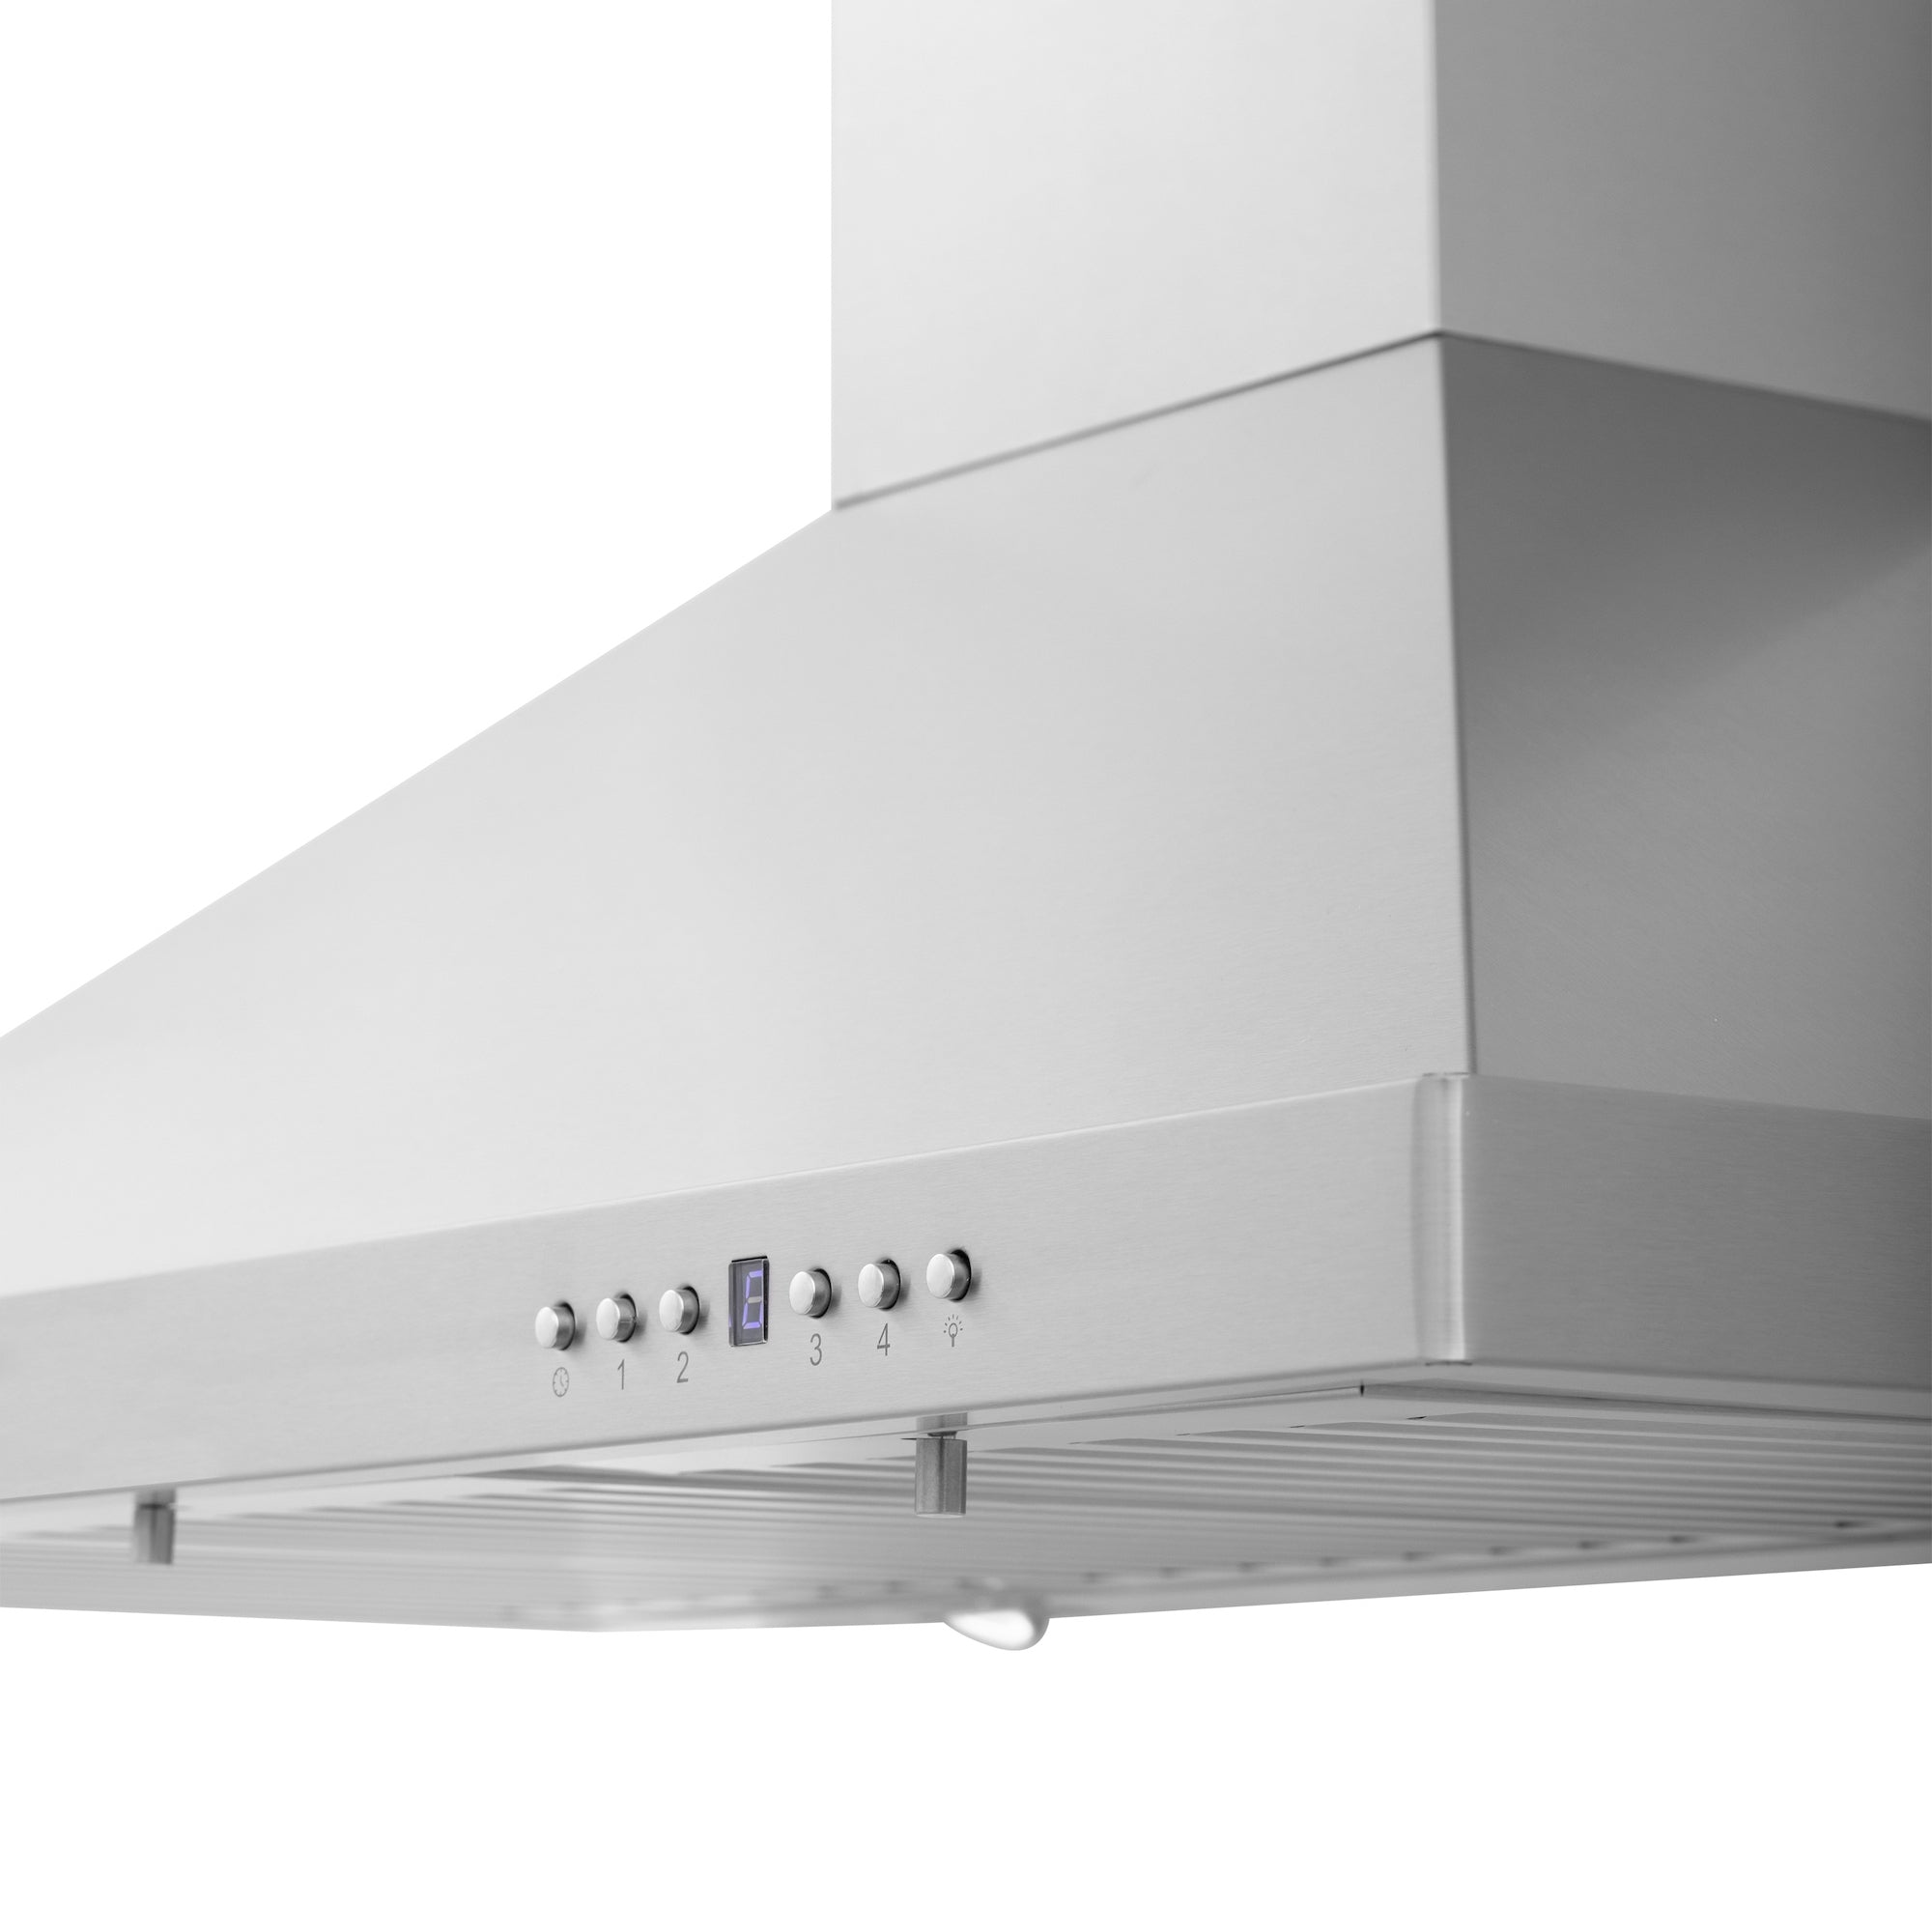 ZLINE Convertible Vent Wall Mount Range Hood in Stainless Steel (KB)